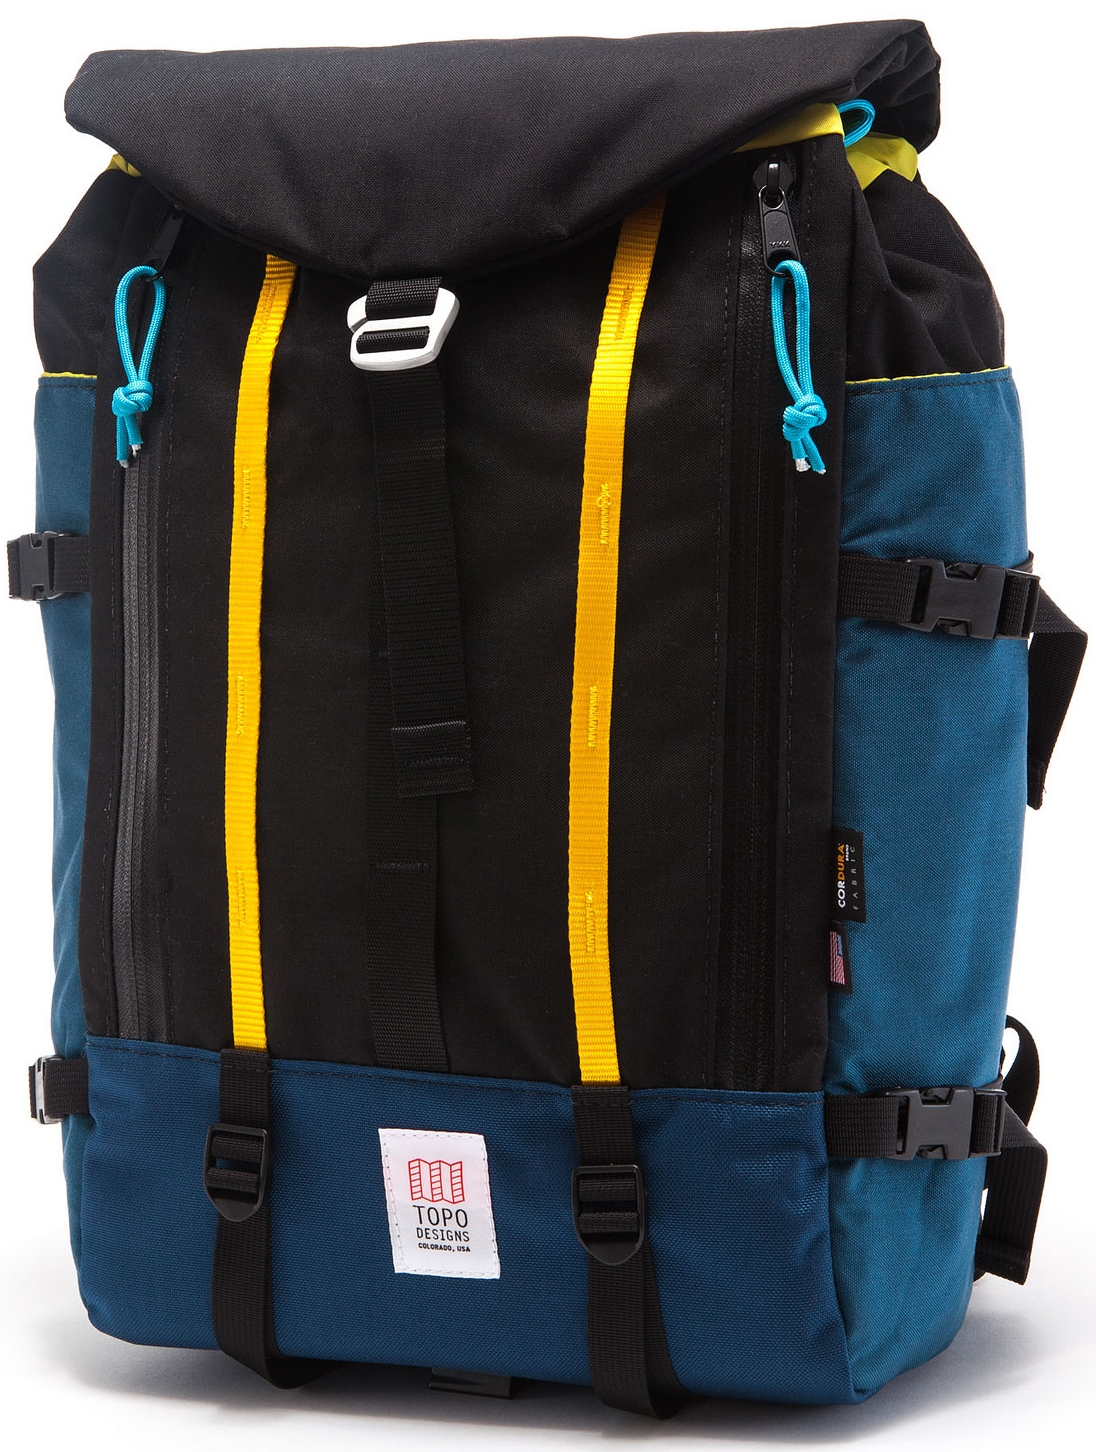 Topo Designs Mountain Pack, $190